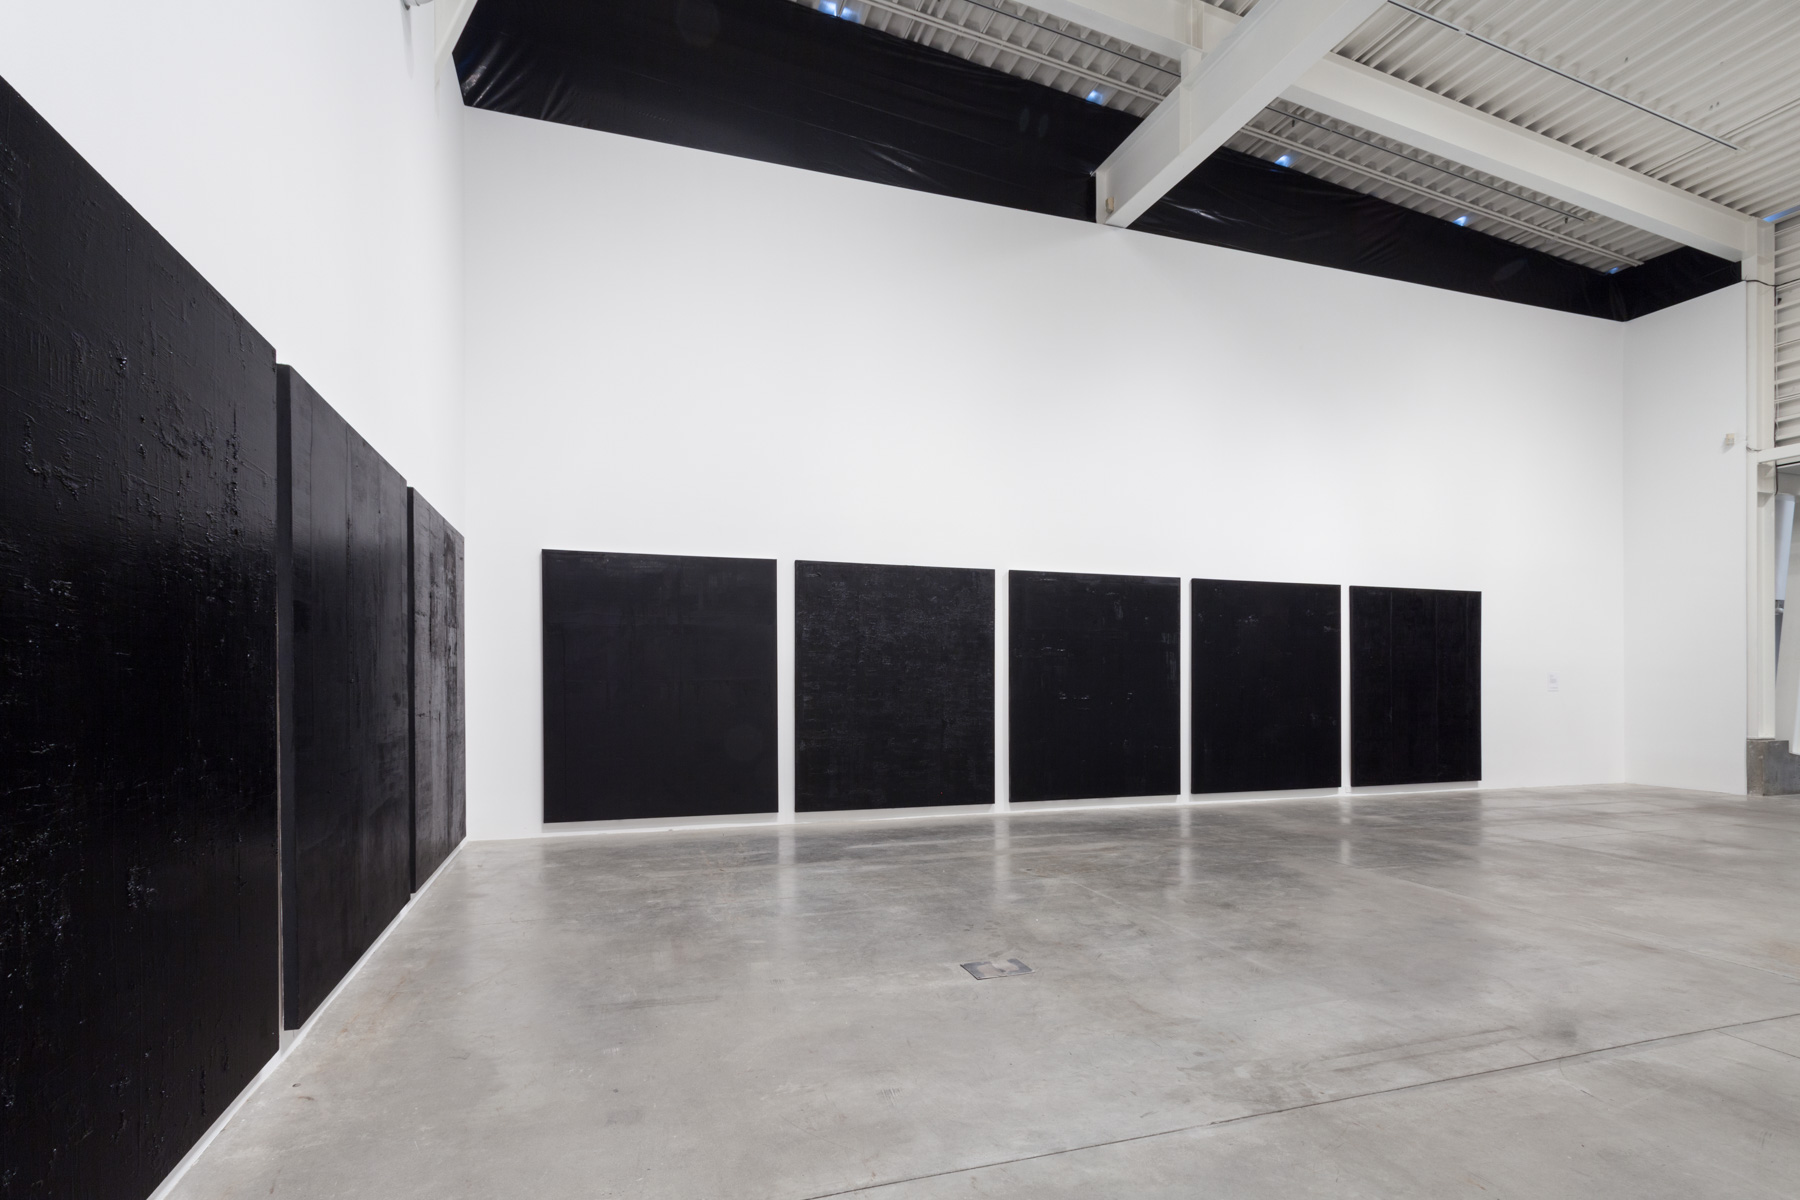 Morris and Helen Belkin Art Gallery, 2017. Untitled black monochrome paintings (3.-10.PBk9.CI77267/PBk11.Fe3O4) The Frequency 10 series. Oil, grit, graphite on canvas, each 213.36cm x 182.88cm (84 inches x 72 inches).